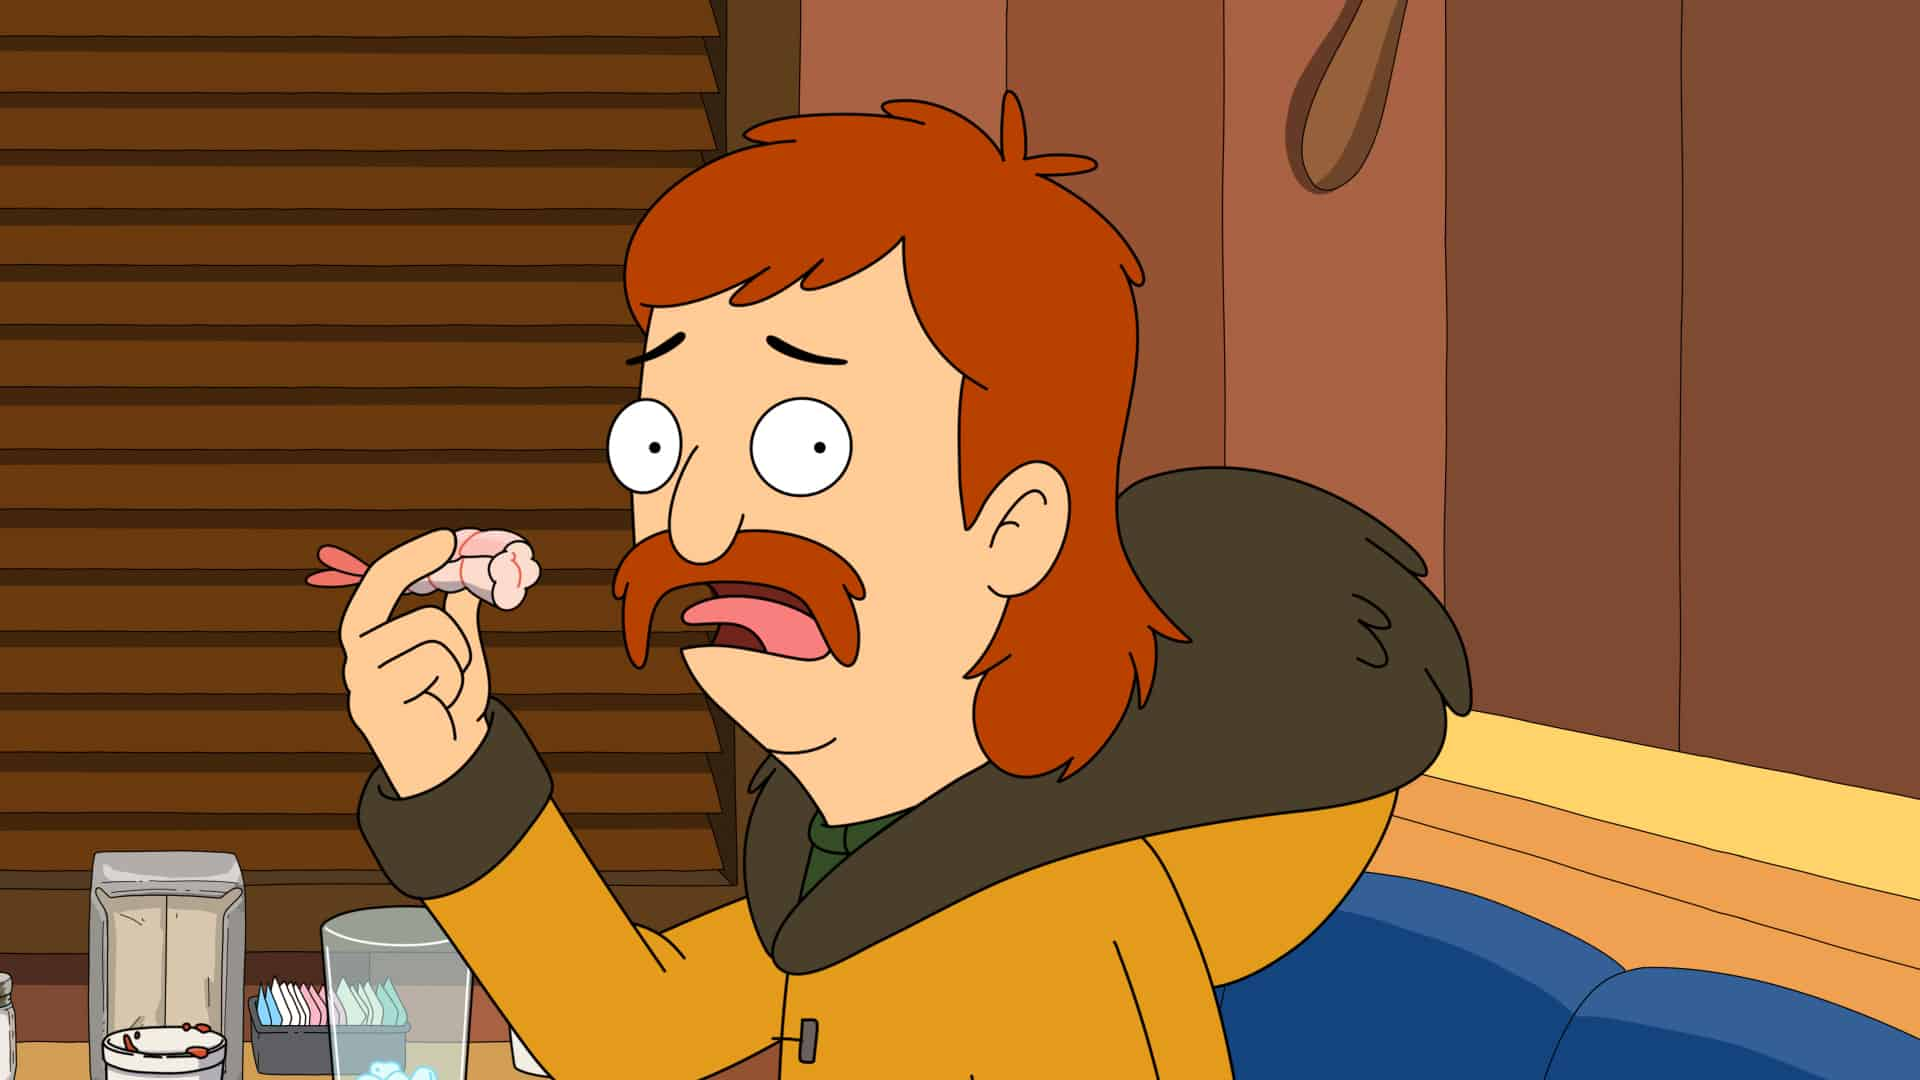 """THE GREAT NORTH Season 2 Episode 3: Moon, Judy and Ham try to survive Alaska's darkest and spookiest day of the year. Meanwhile, Wolf and Honeybee attempt to replace Beef's favorite shirt in the """"The Yawn of the Dead Adventure [Halloween]"""" Halloween-themed episode of THE GREAT NORTH airing Sunday, Oct. 10 at 8:31-9:00 PM ET/PT on FOX. THE GREAT NORTH © 2021 by 20th Television and Fox Media LLC."""